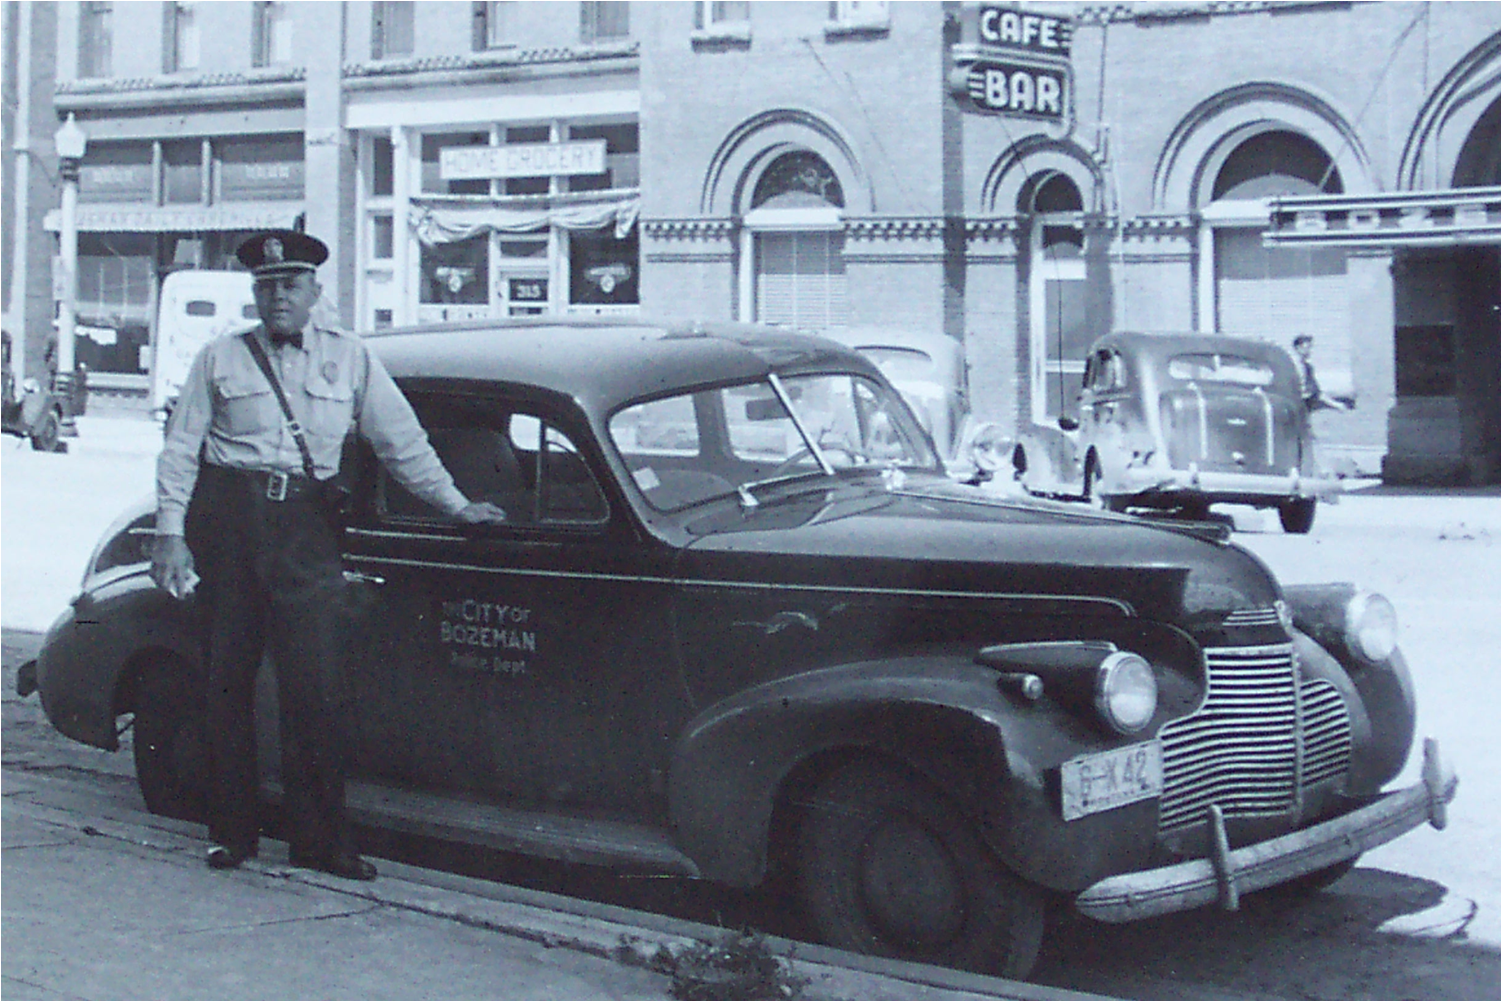 1940s Bozeman Police patrol vehicle